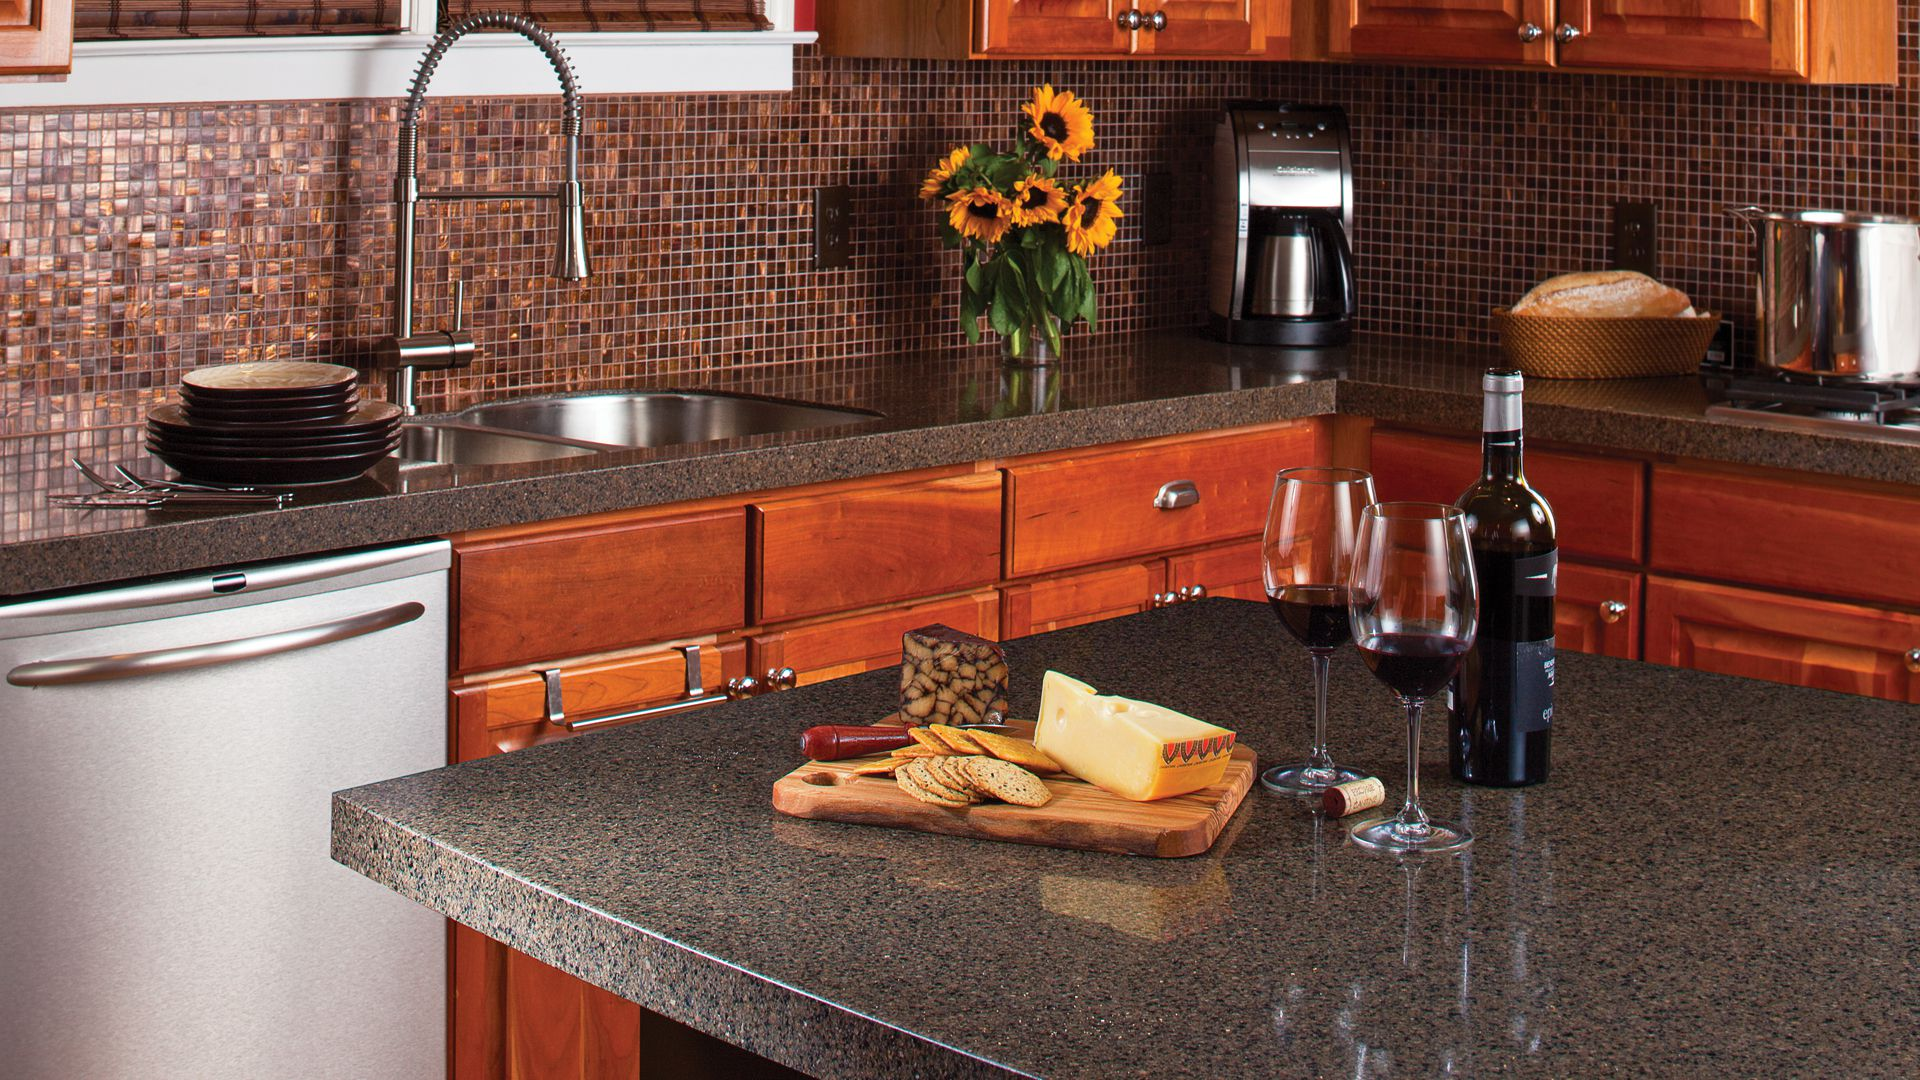 7 popular kitchen countertop materials - midcityeast